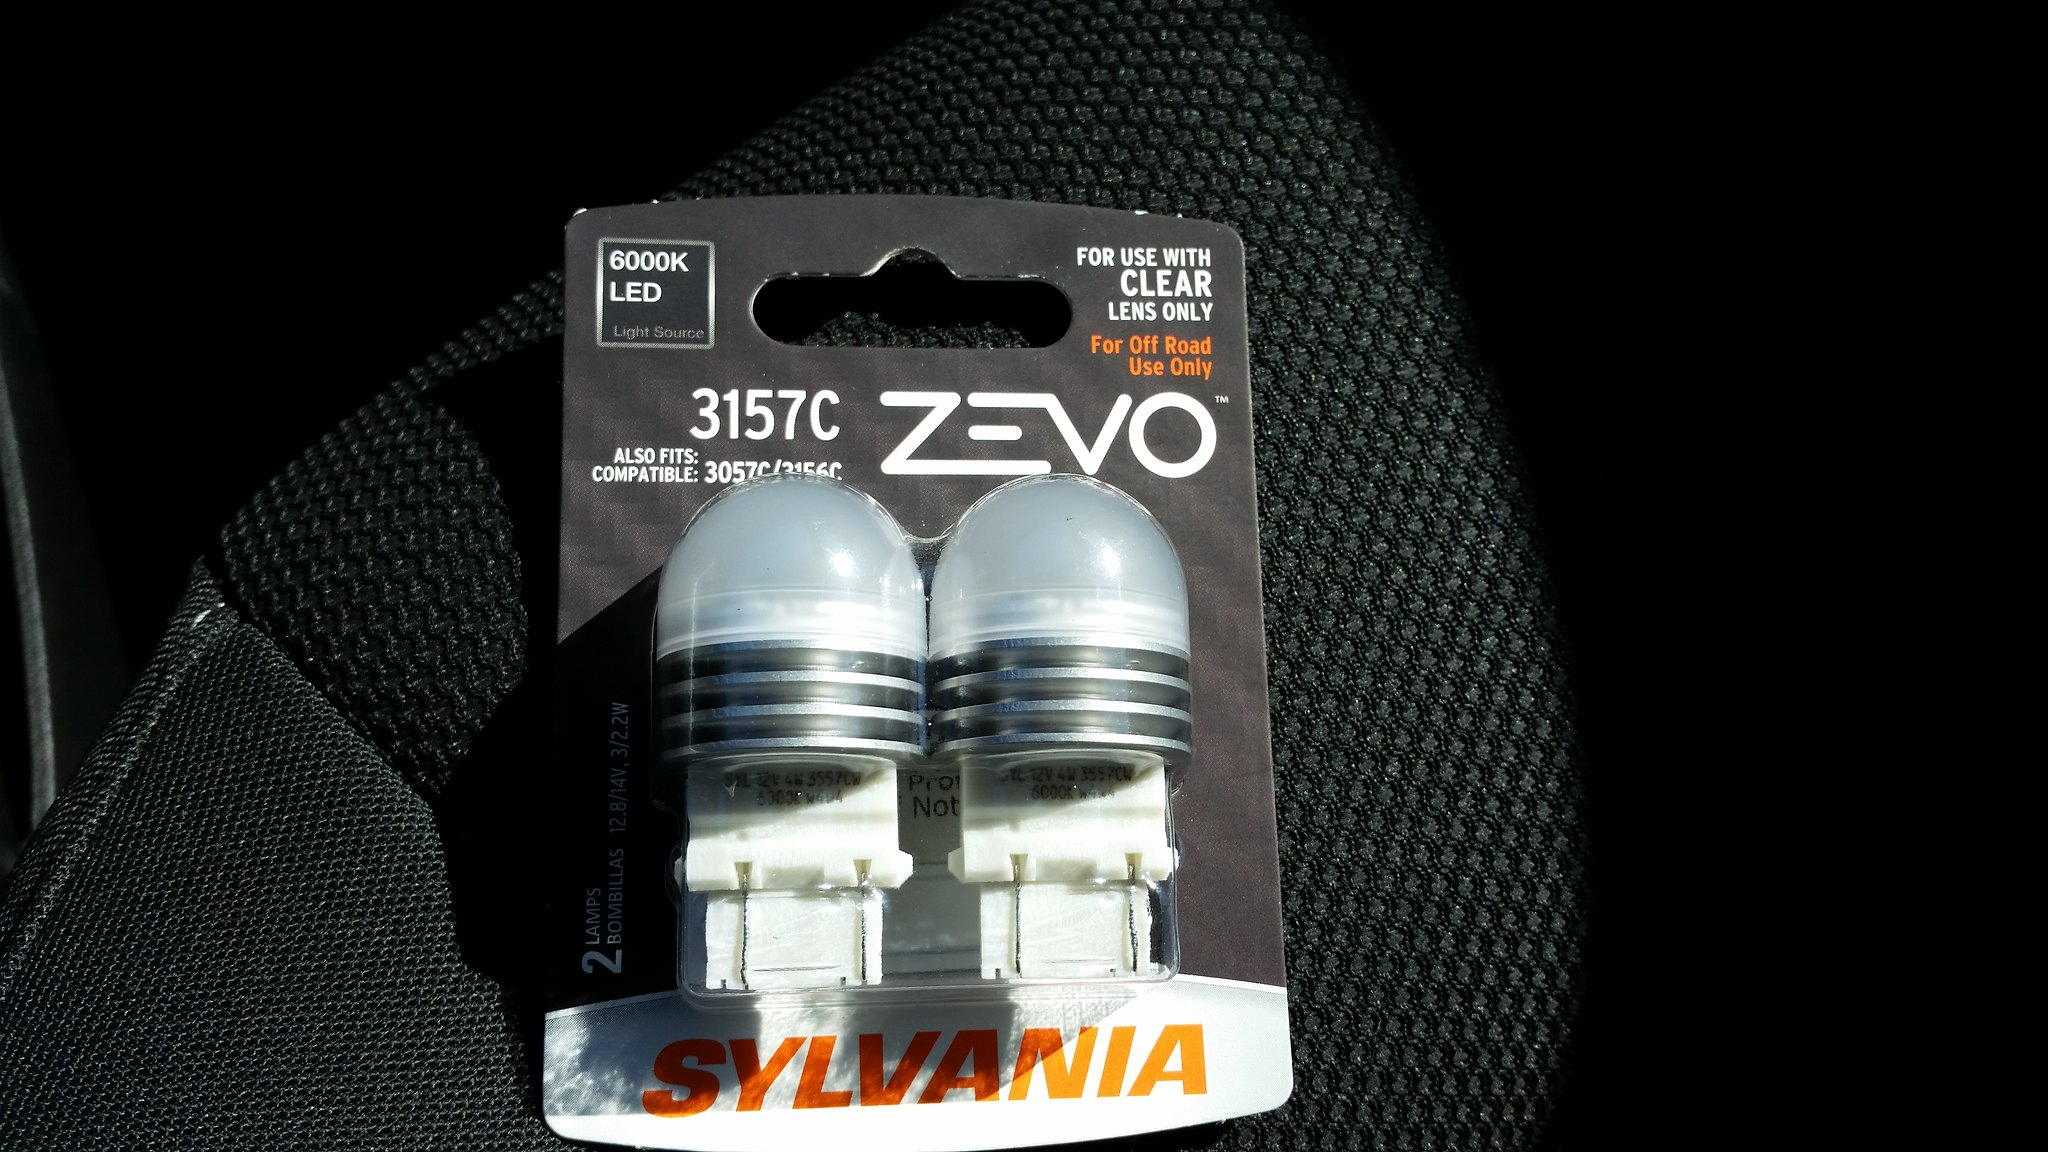 Elegant Review: Sylvania ZEVO LED Bulbs Amazing Design